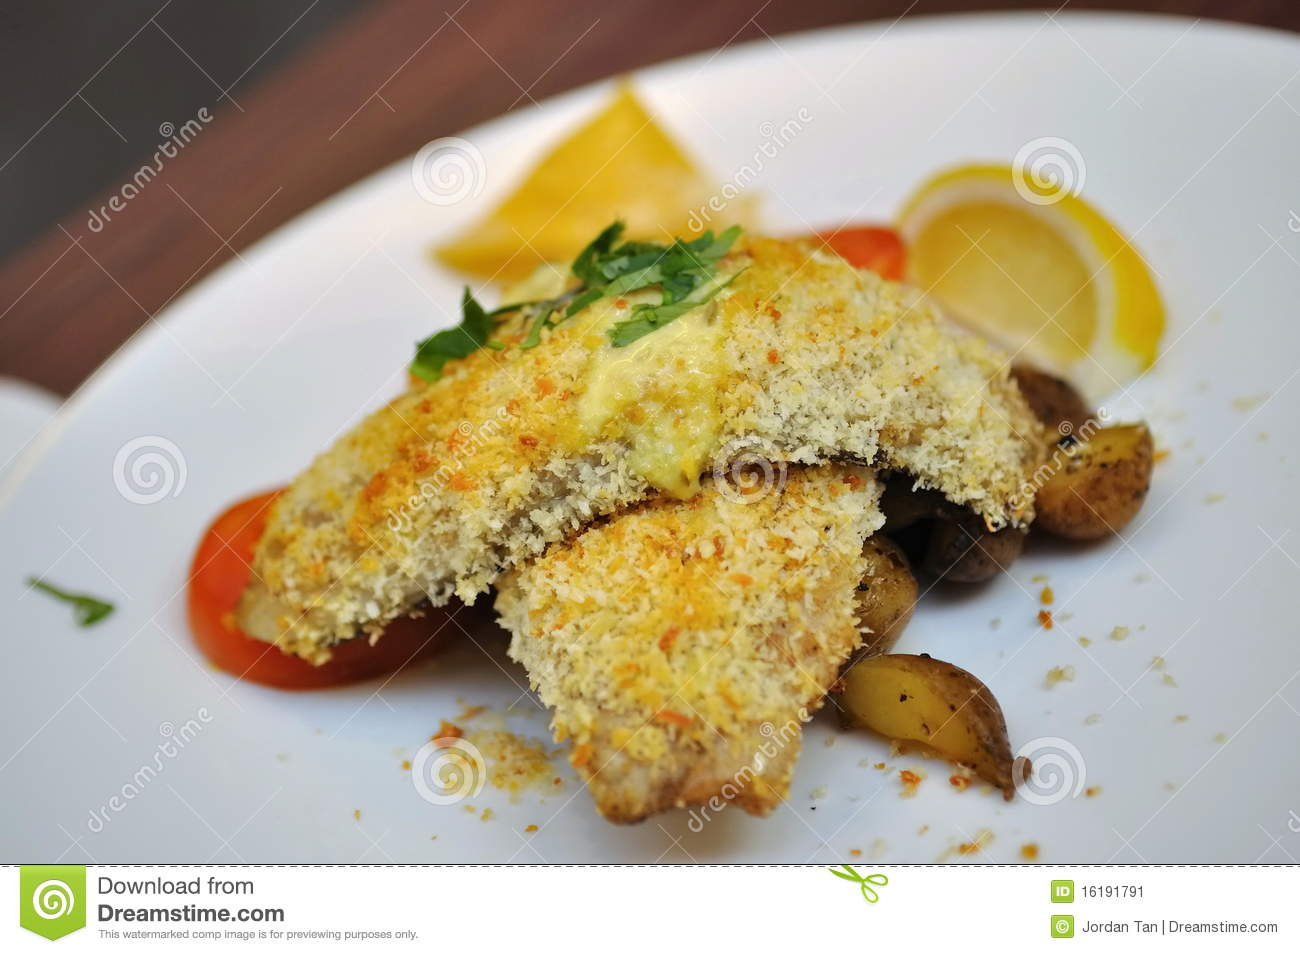 Grilled fish with bread crumbs stock image image 16191791 for Fried fish with bread crumbs